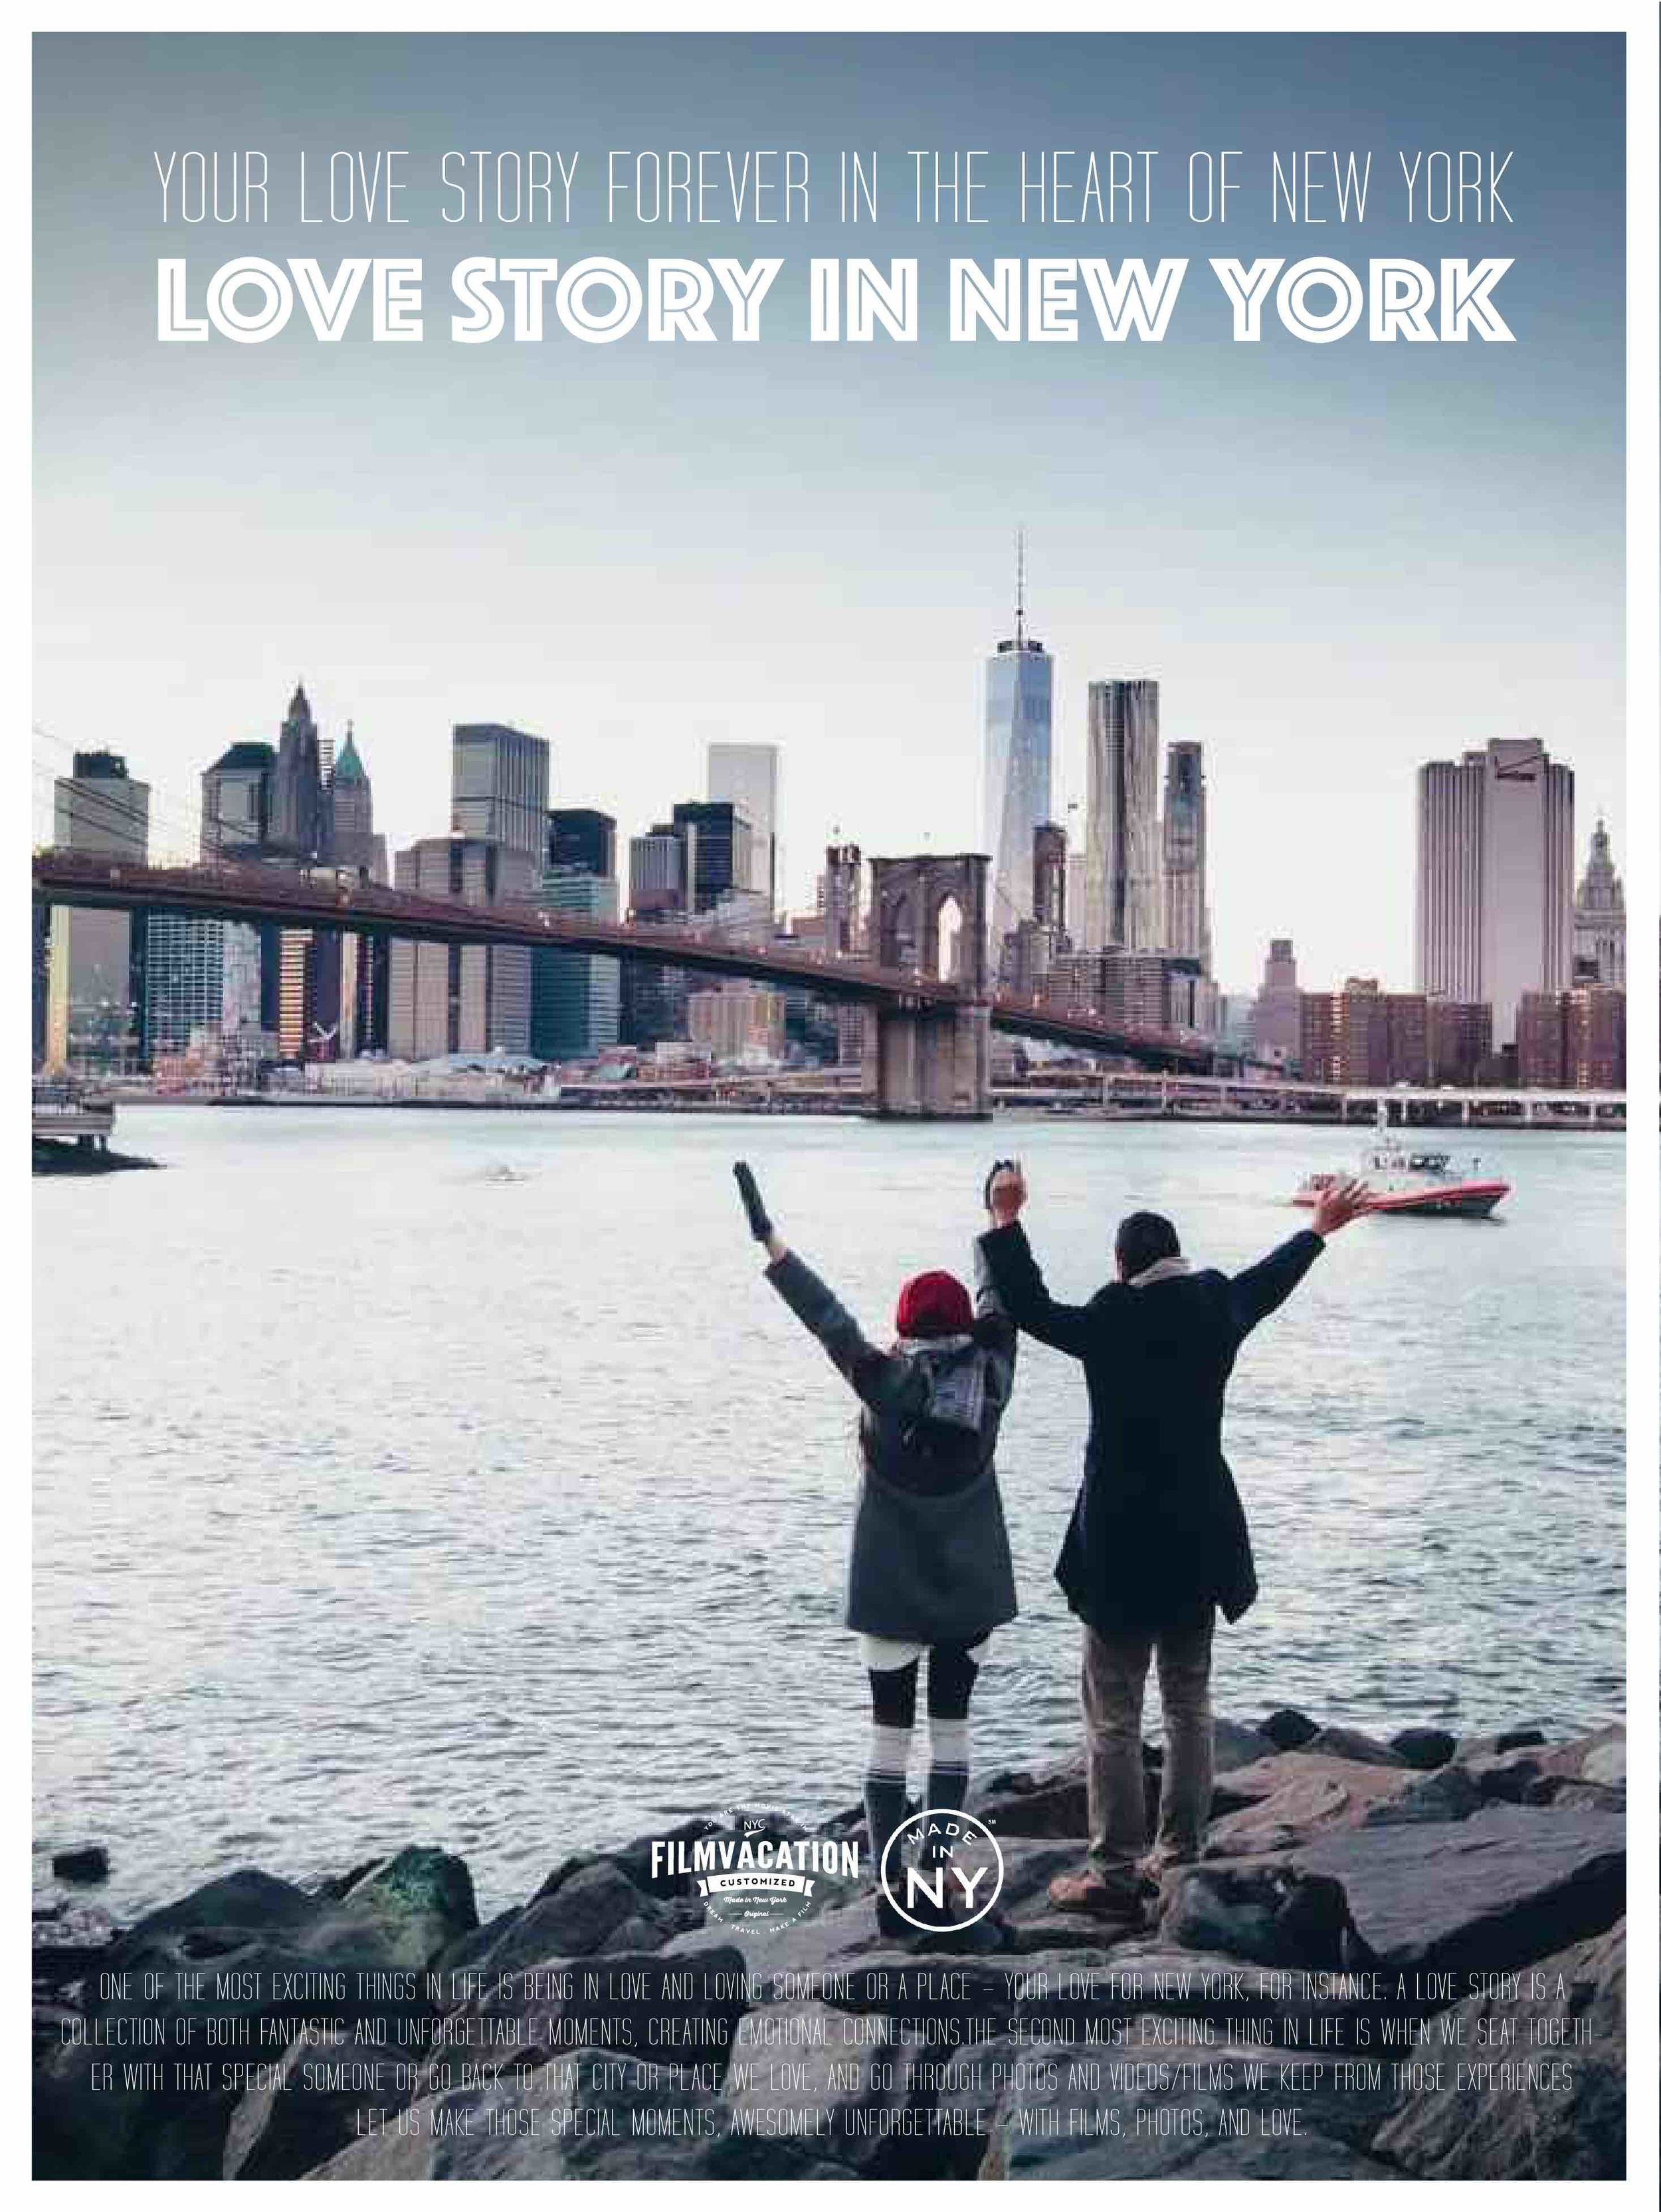 YOUR LOVE STORY IN NEW YORK - TAKE THE FIRST STEP TO HAVE YOUR LOVE STORY FILM IN NEW YORK CITY